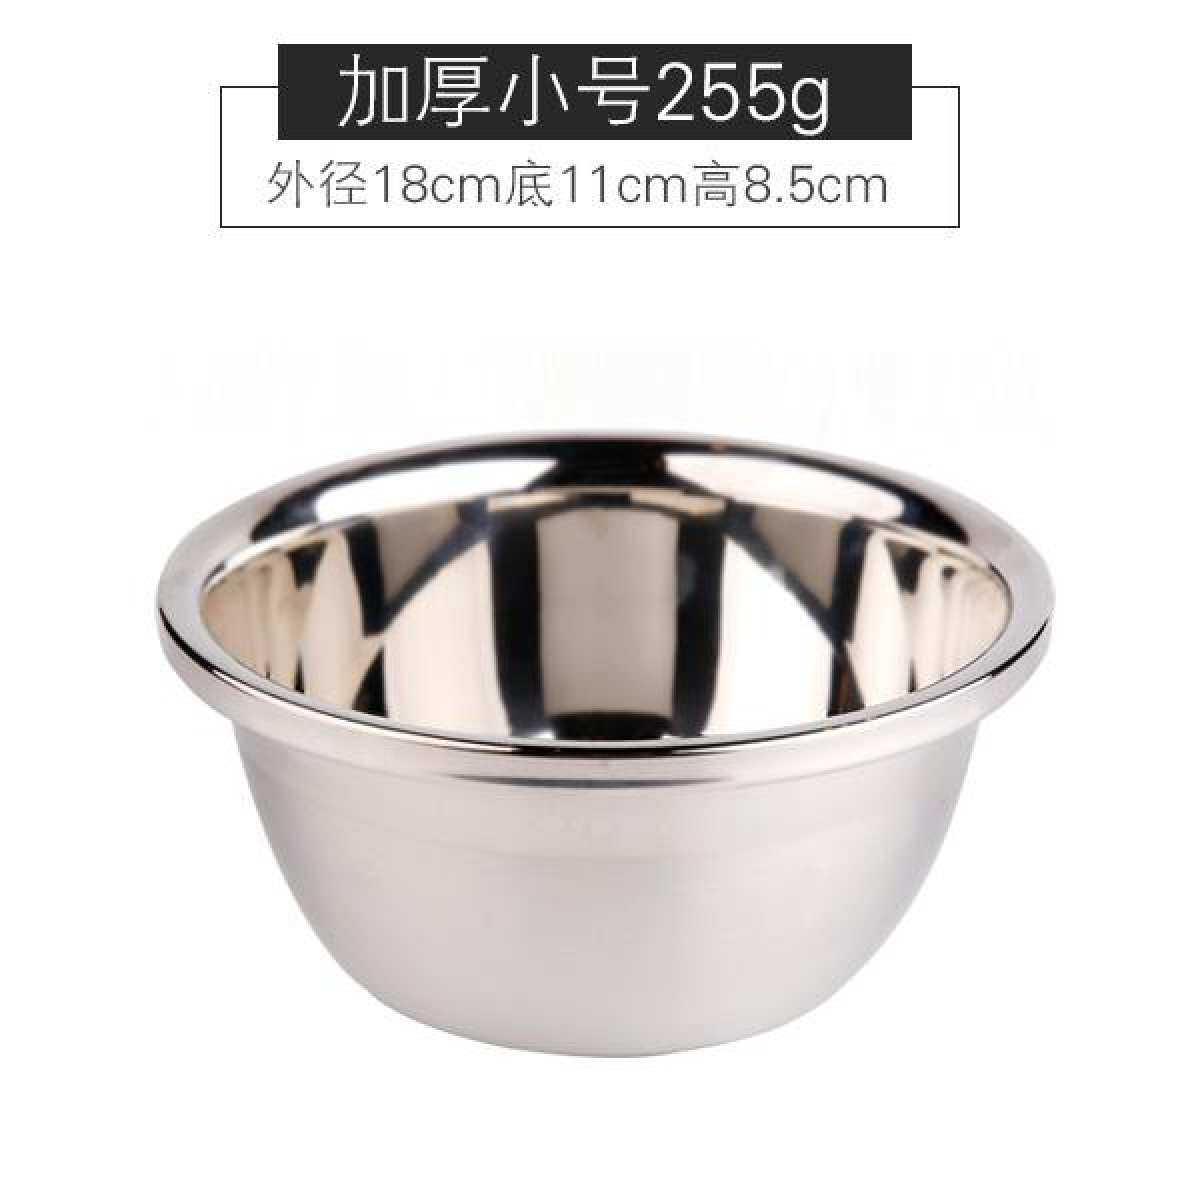 Bowl For Fruit No Magnetic Stainless Egg Beater Steel